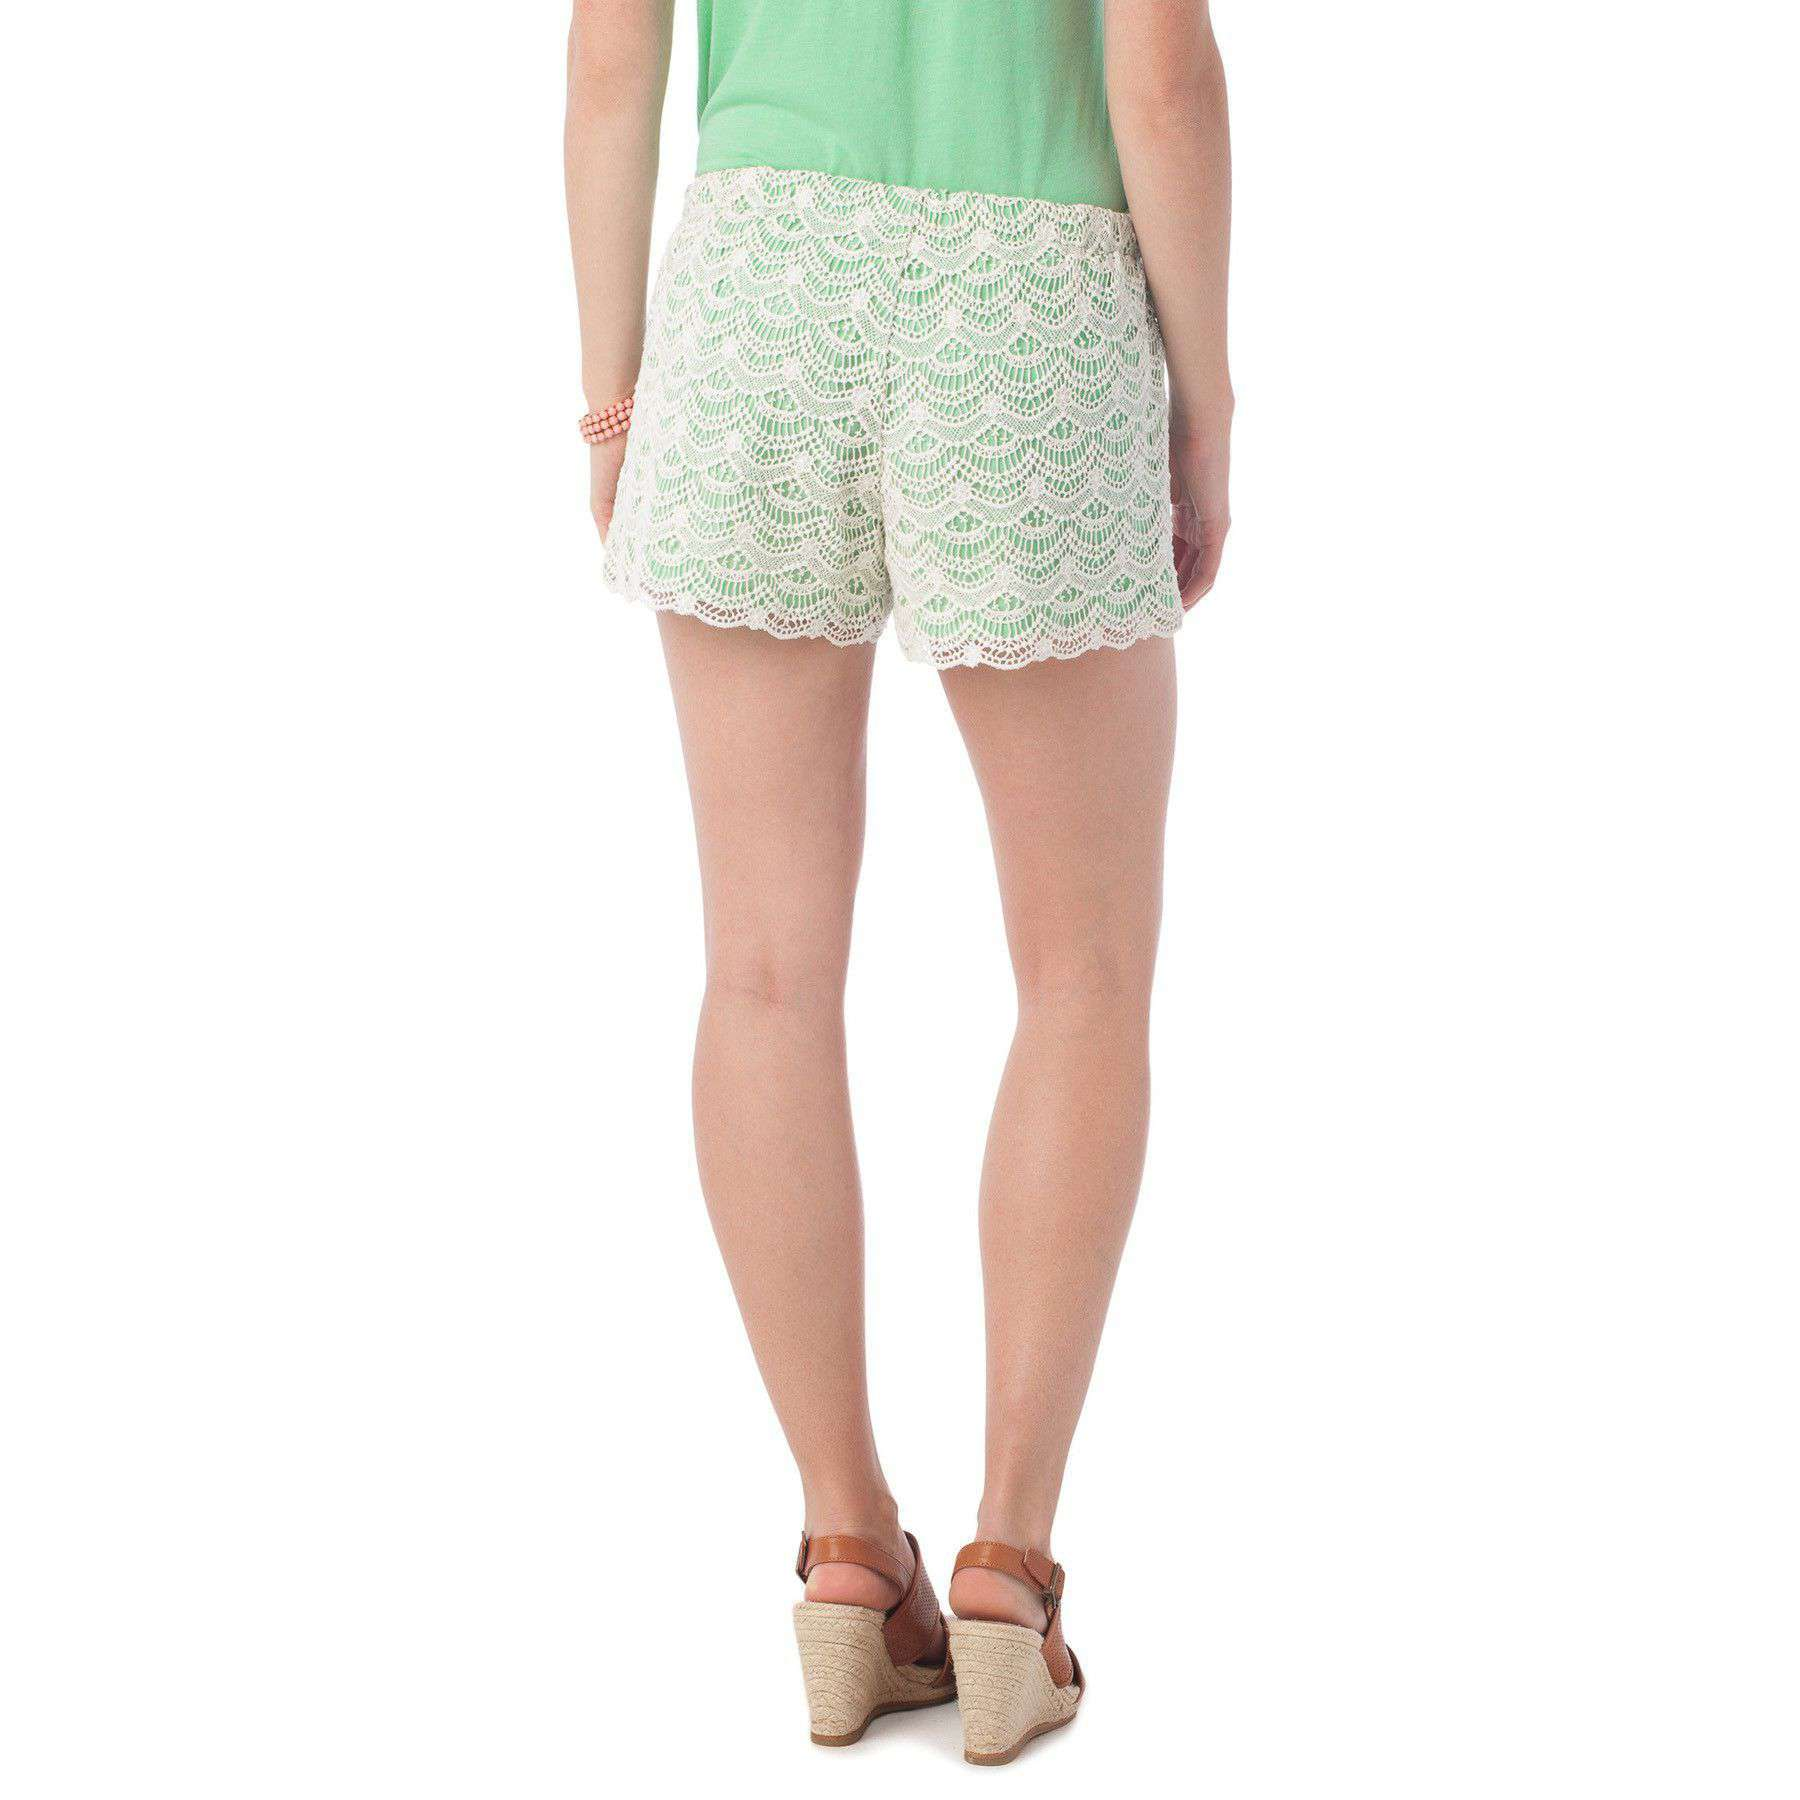 Emma Lace Short in Starboard by Southern Tide